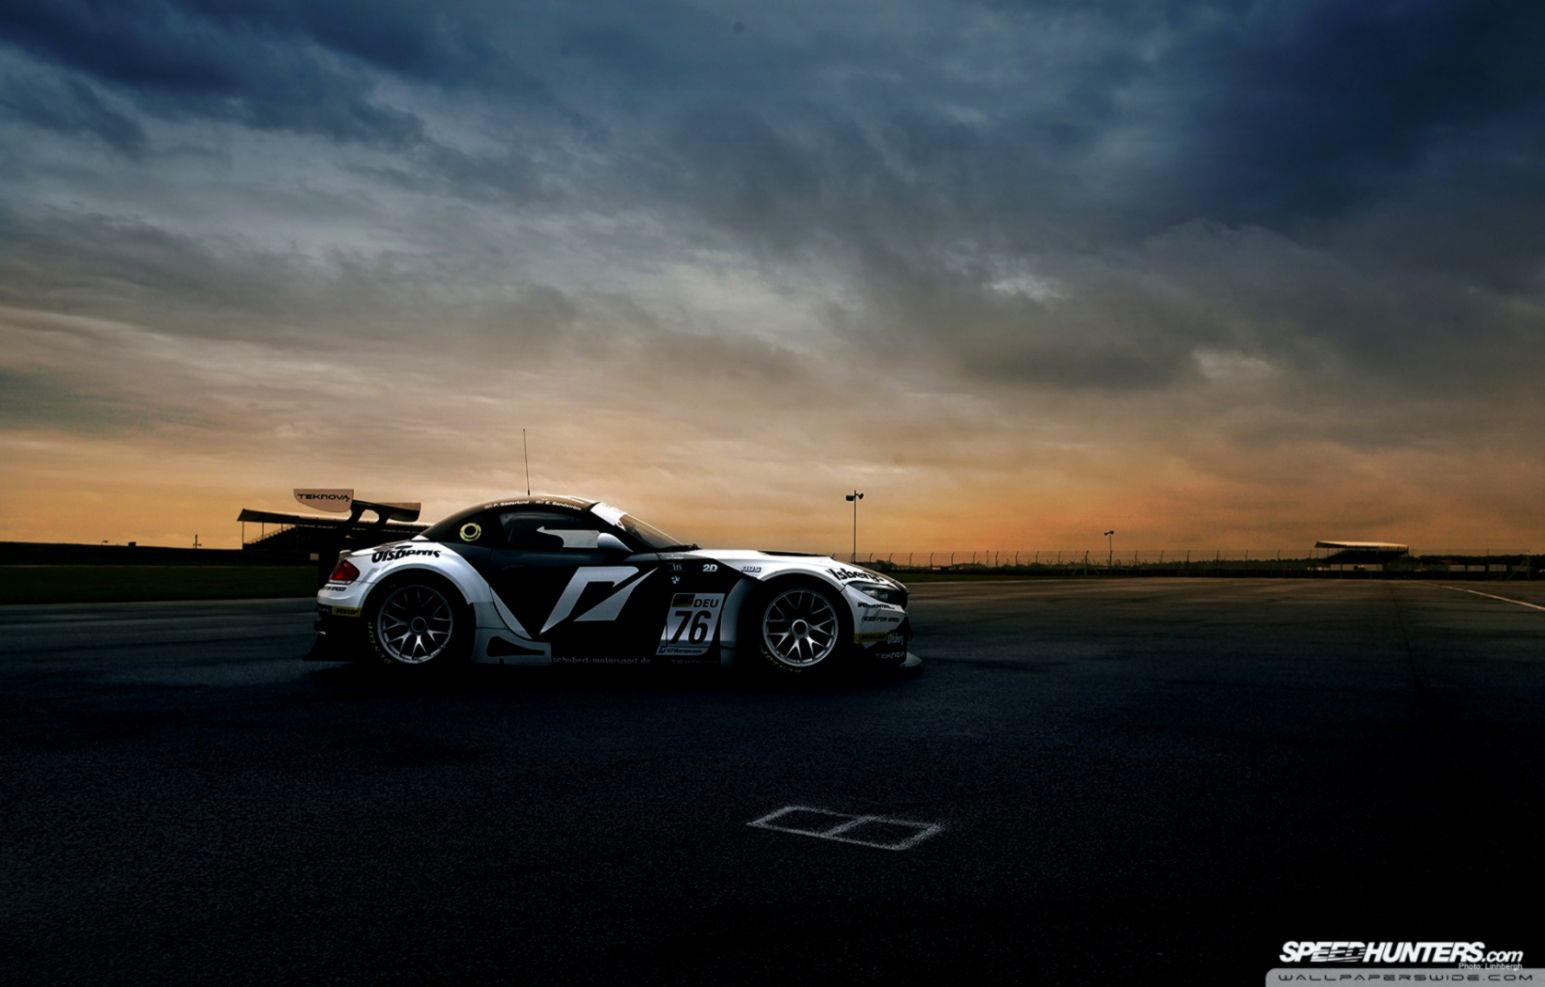 Bmw Z4 Need For Speed Wallpapers Hd Laptop Wallpapers